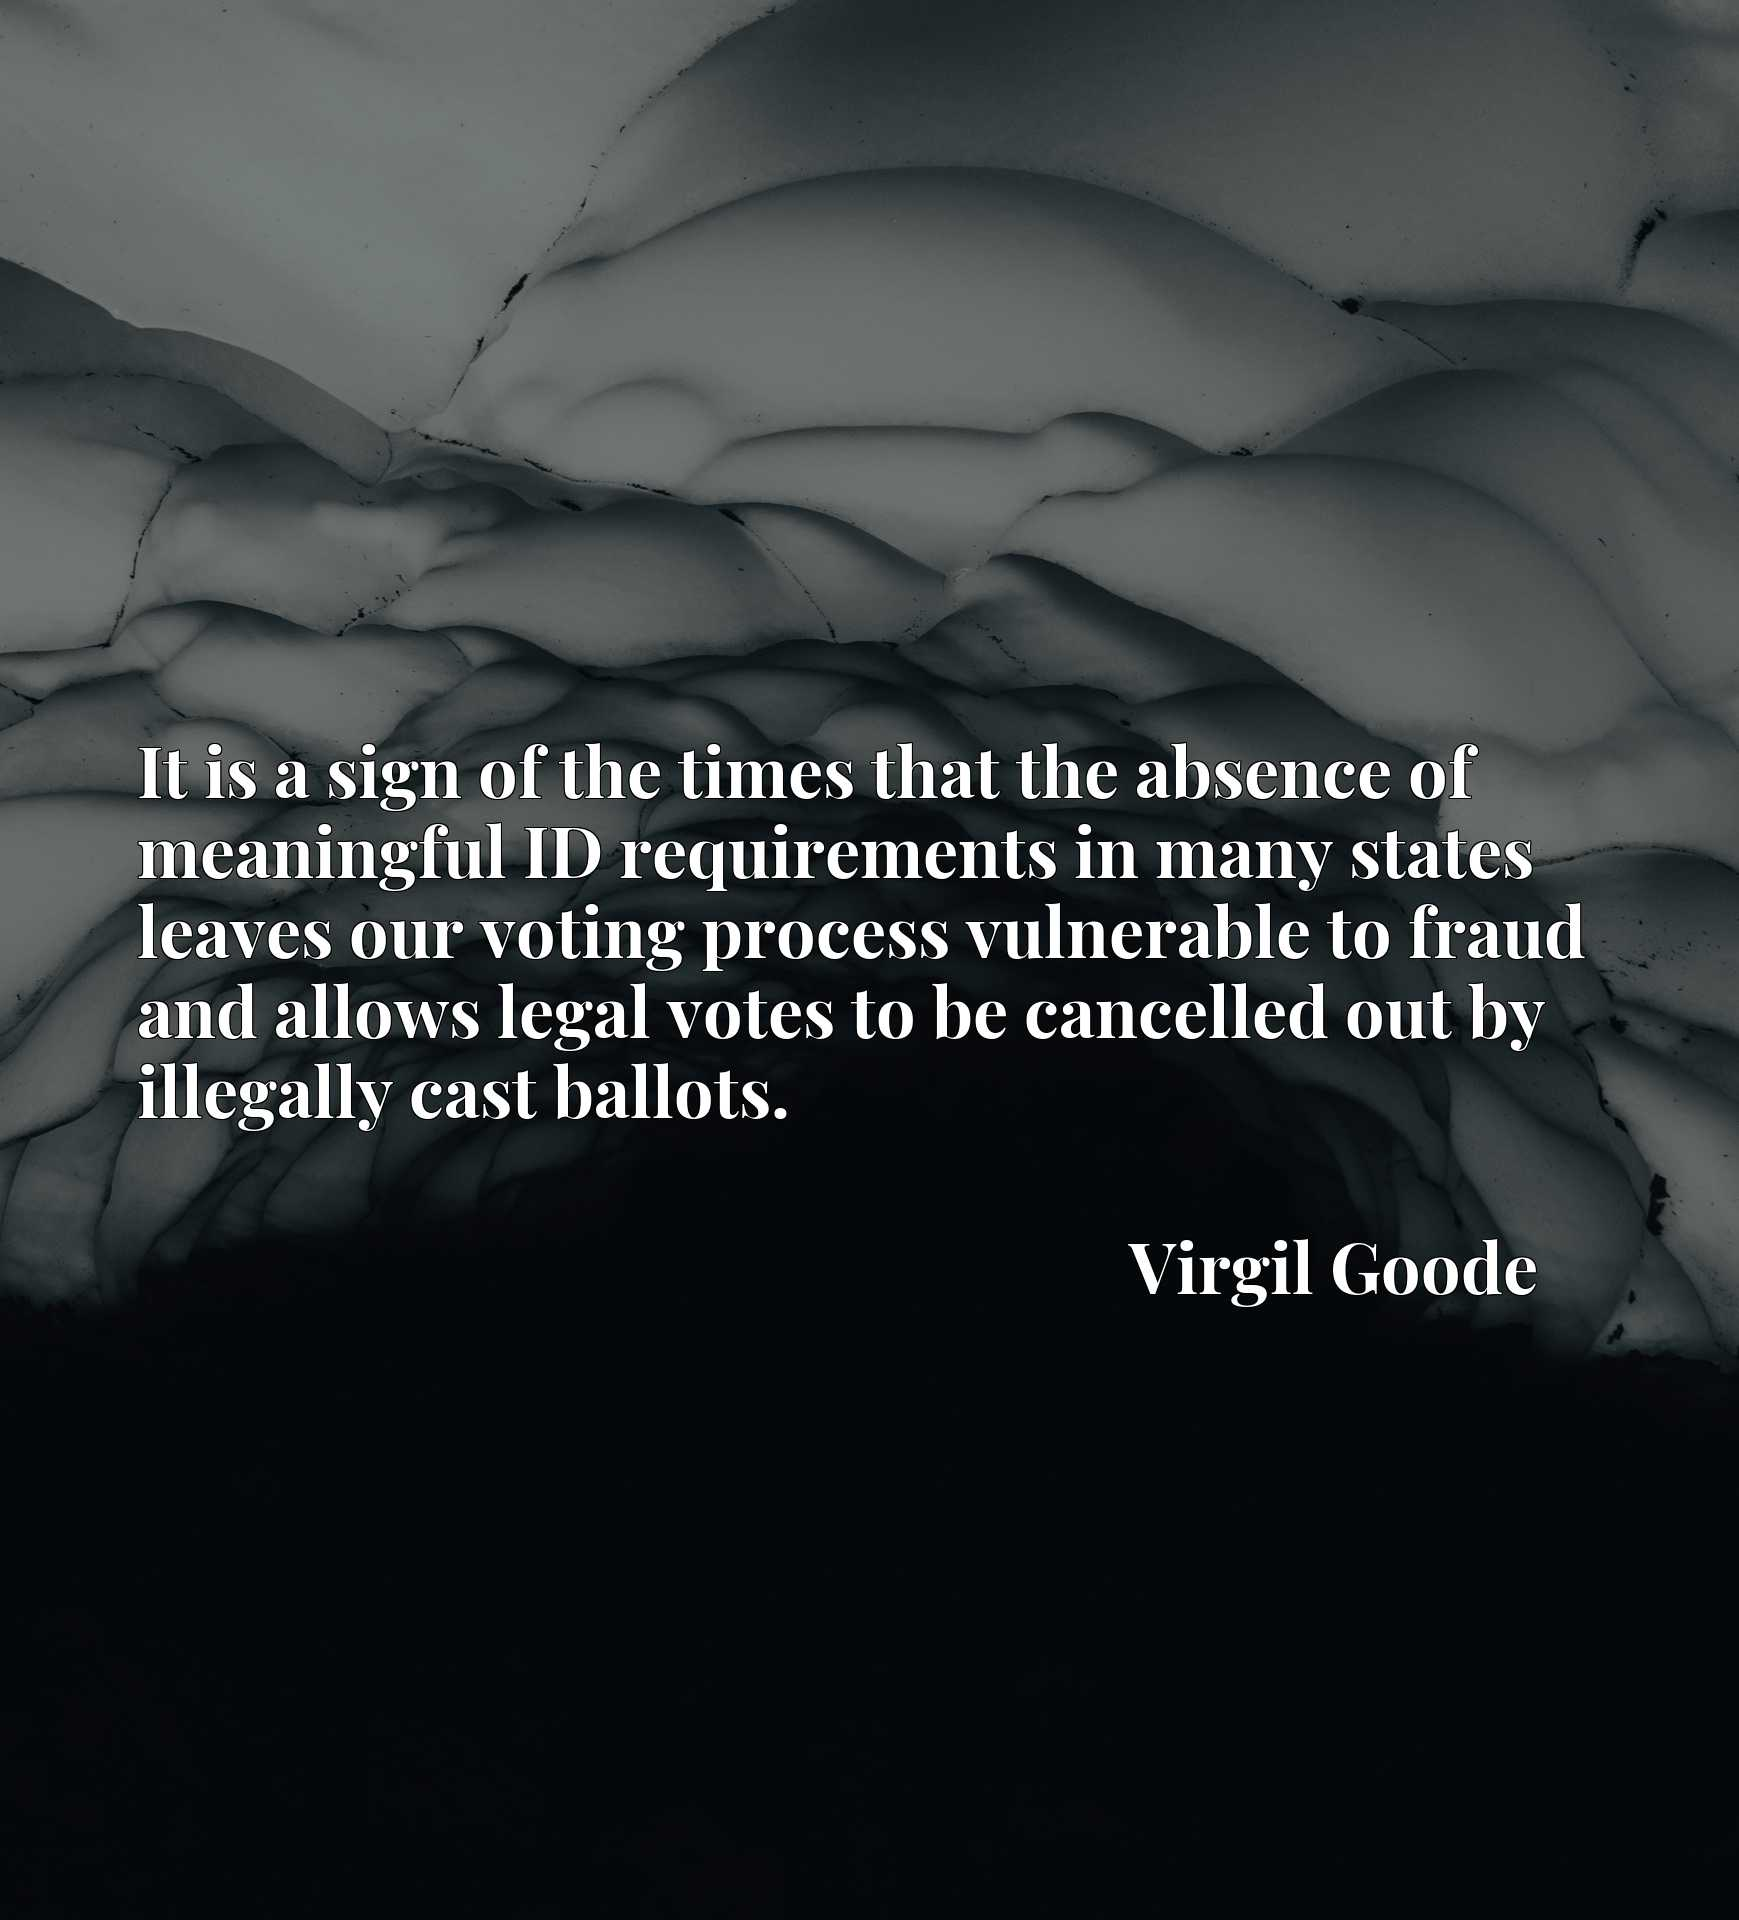 Quote Picture :It is a sign of the times that the absence of meaningful ID requirements in many states leaves our voting process vulnerable to fraud and allows legal votes to be cancelled out by illegally cast ballots.